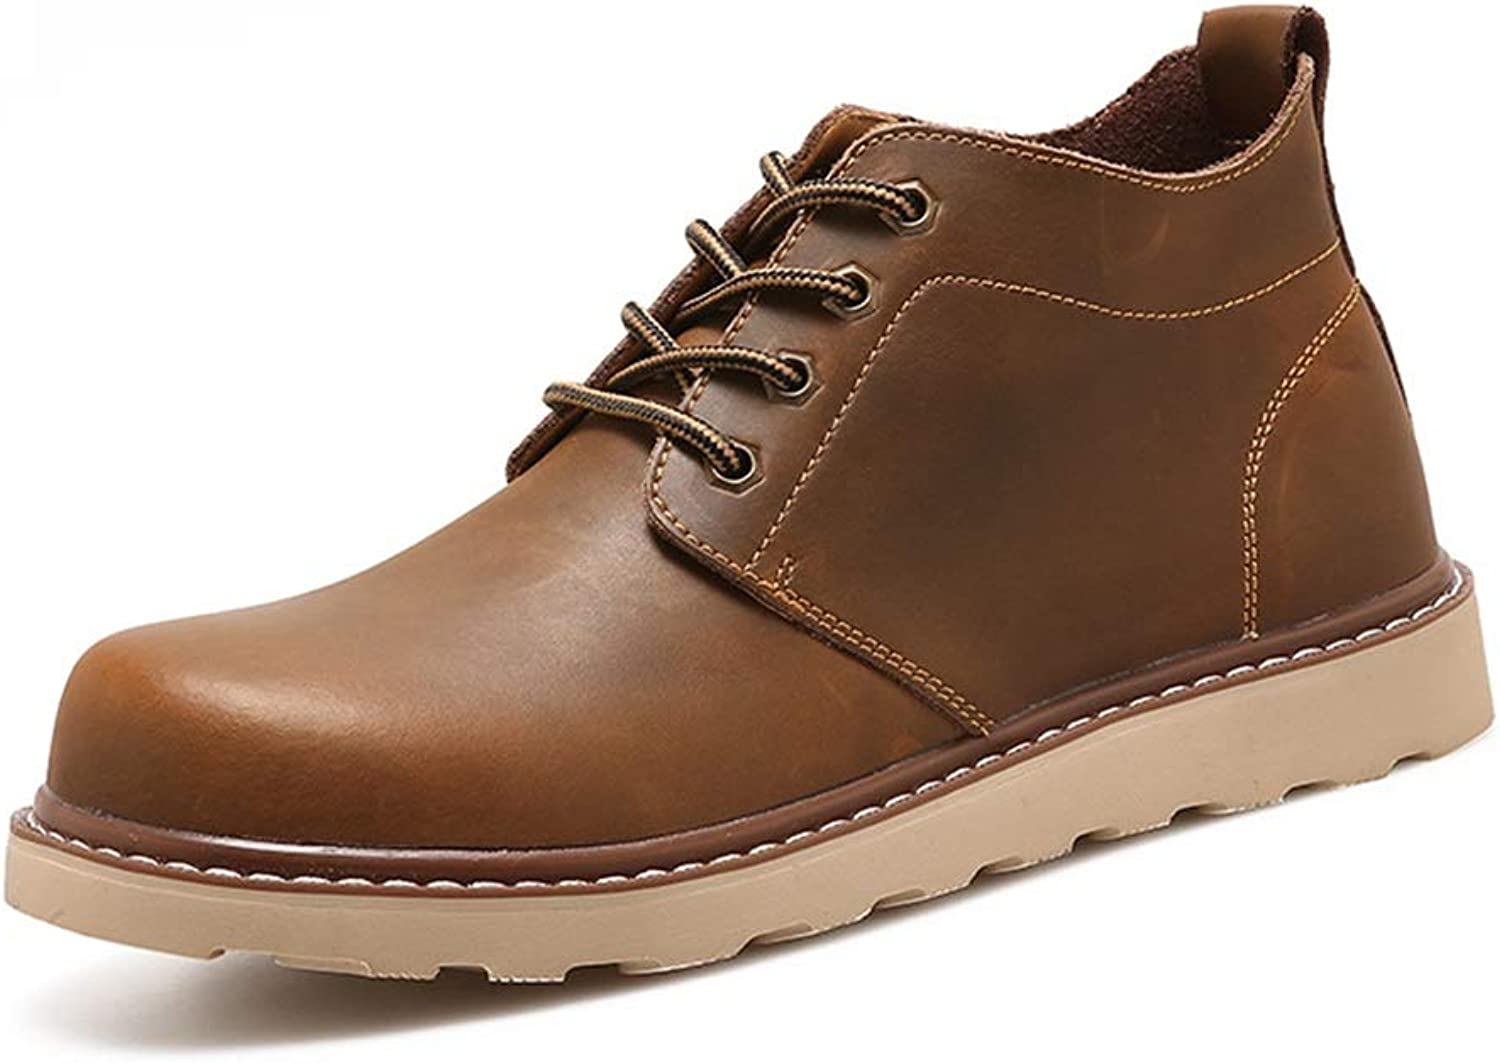 ZHRUI Mens Classic Ankle Boots Soft Sole Non Slip Waterproof Comfort Chukka Boots (color   Brown, Size   UK 5.5)